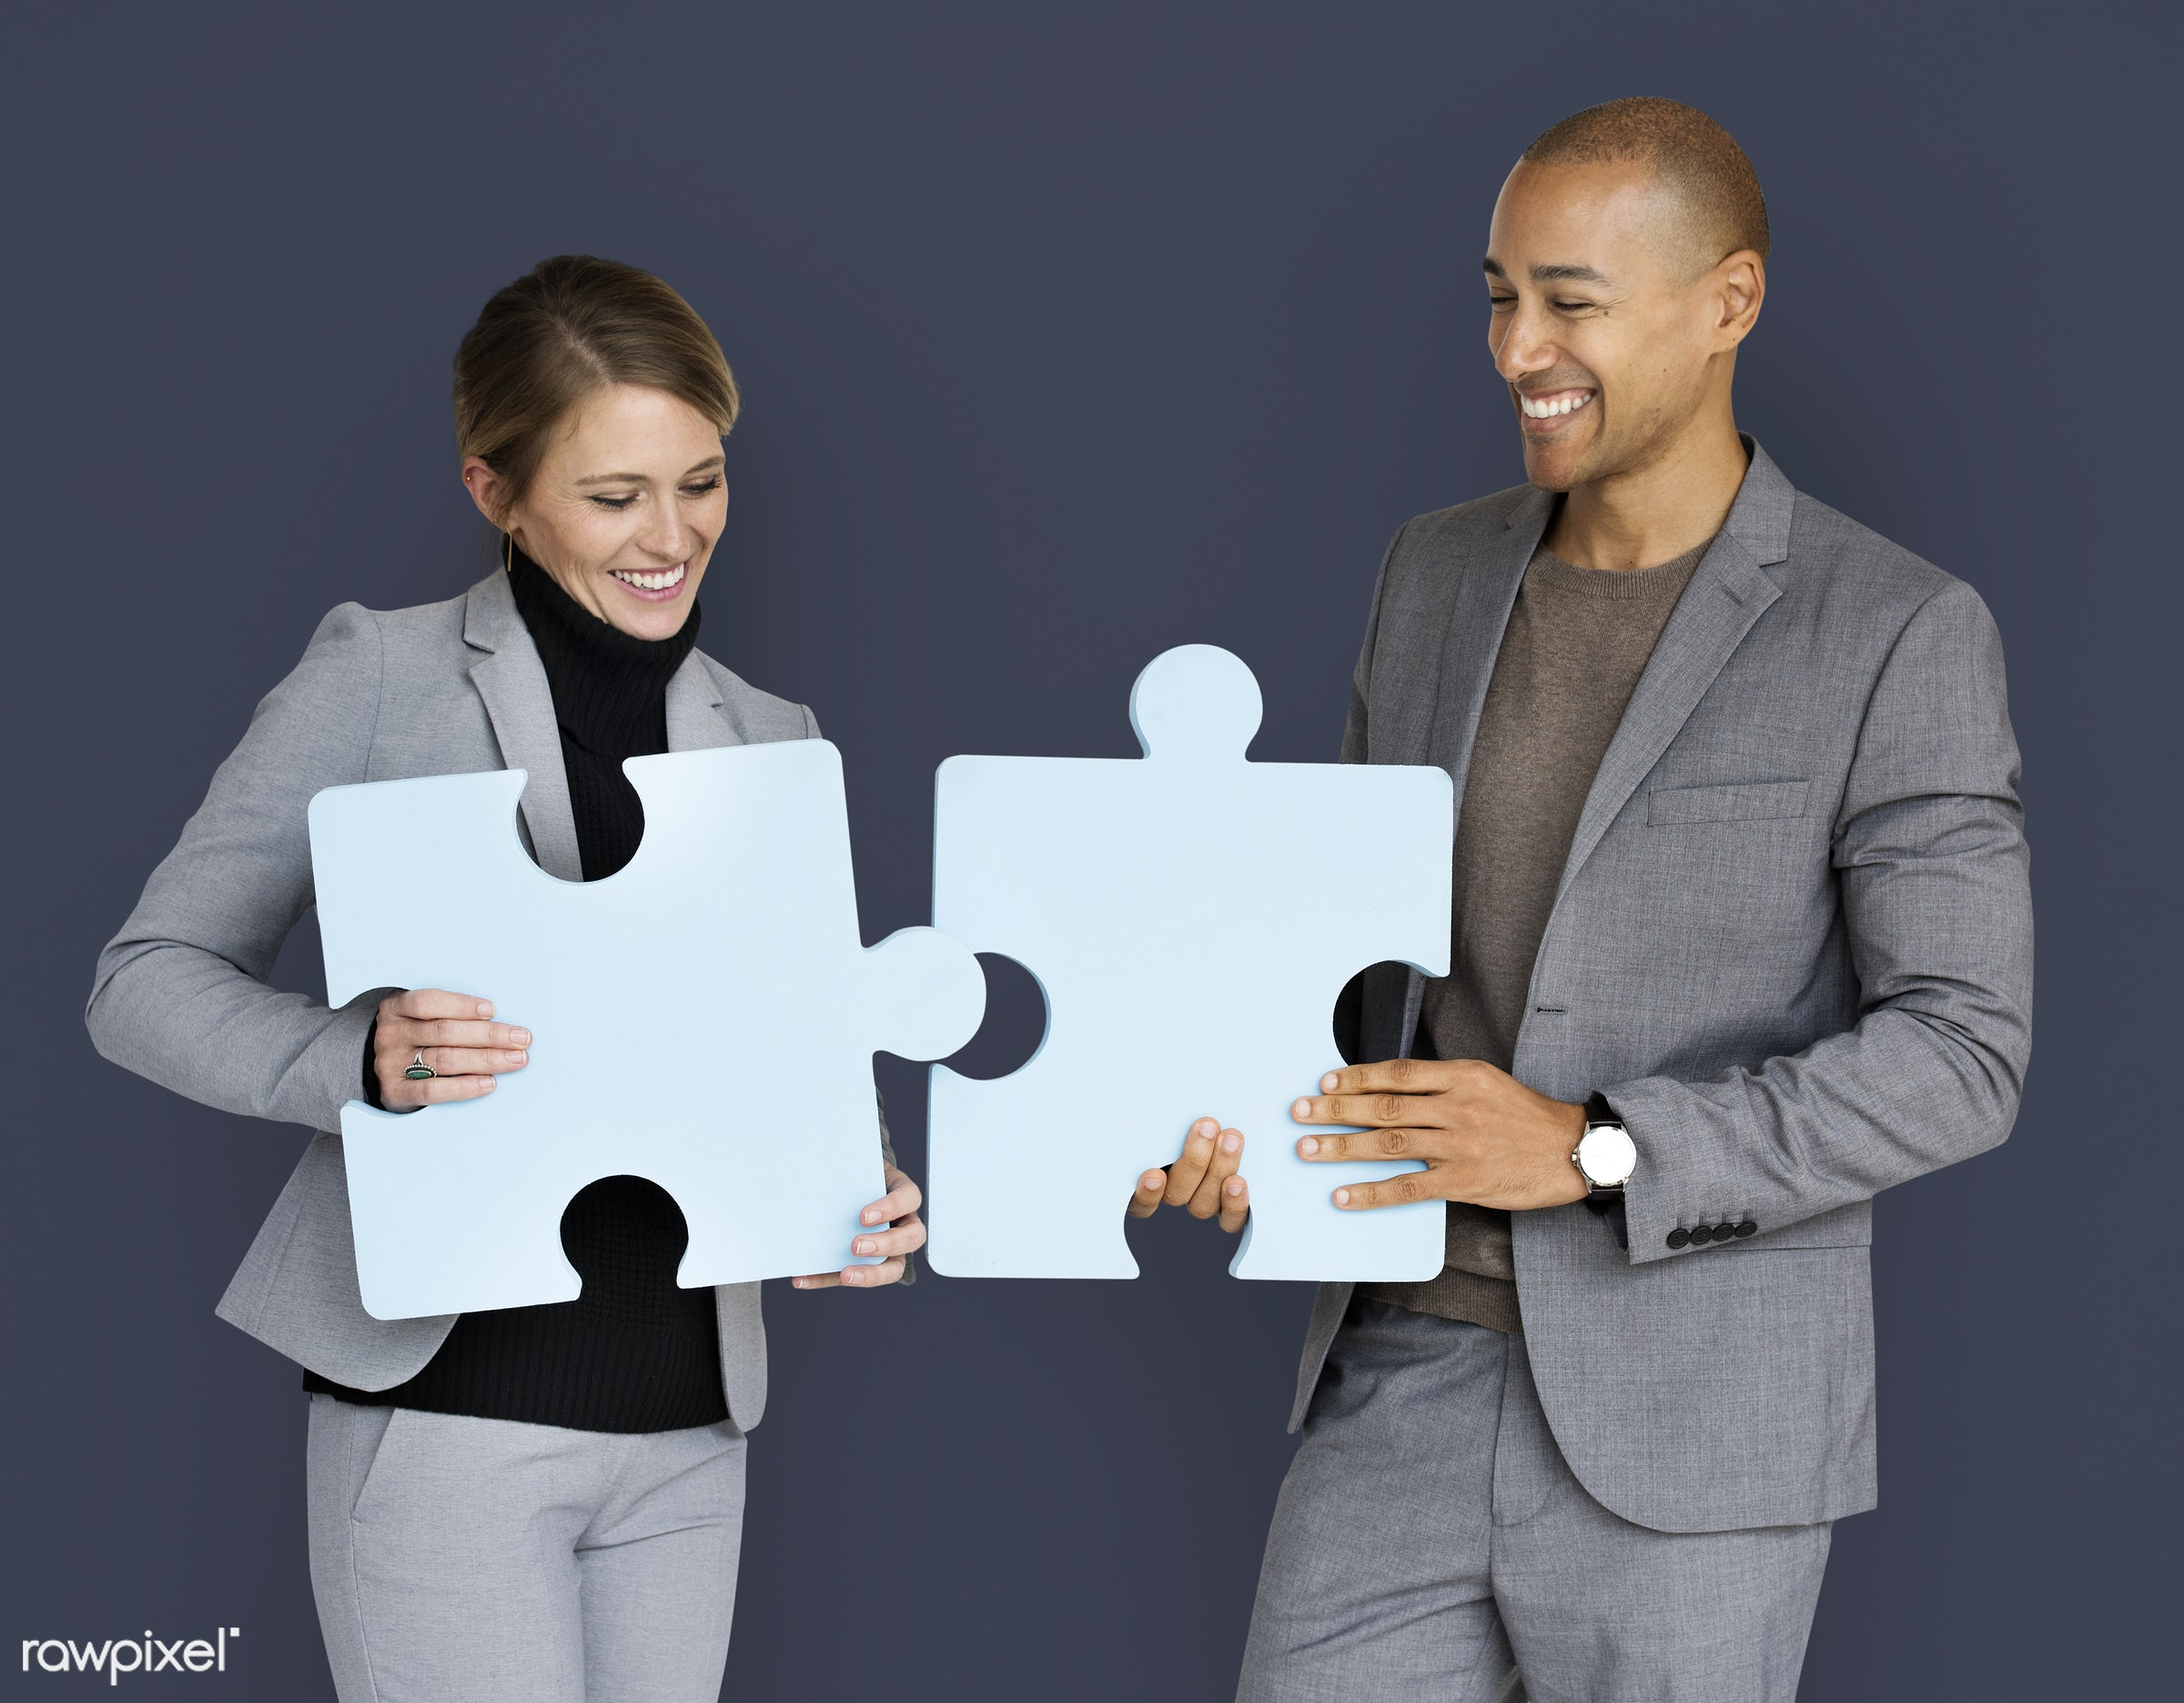 studio, expression, person, jigsaw, holding, people, teamwork, woman, cheerful, smiling, isolated, connection, symbol,...